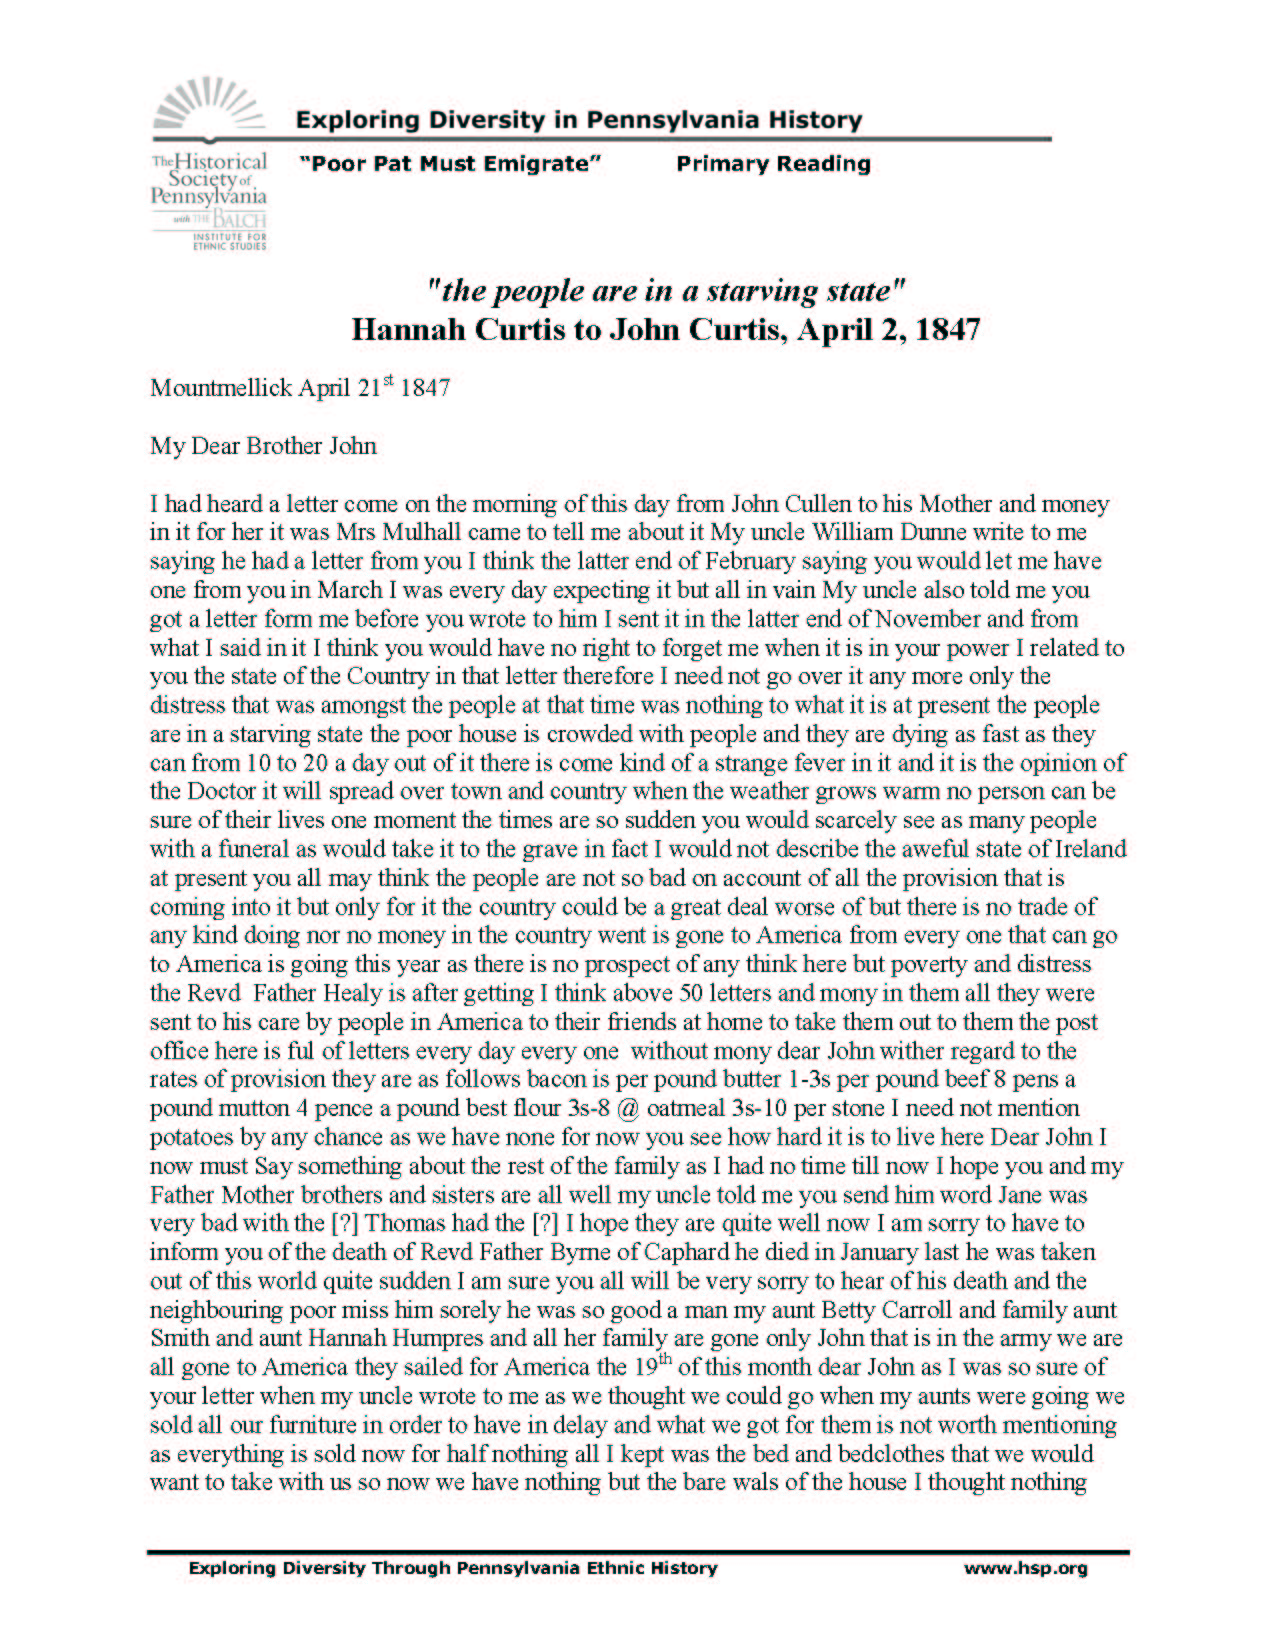 typed transcription of the original 1847 letter page one of two